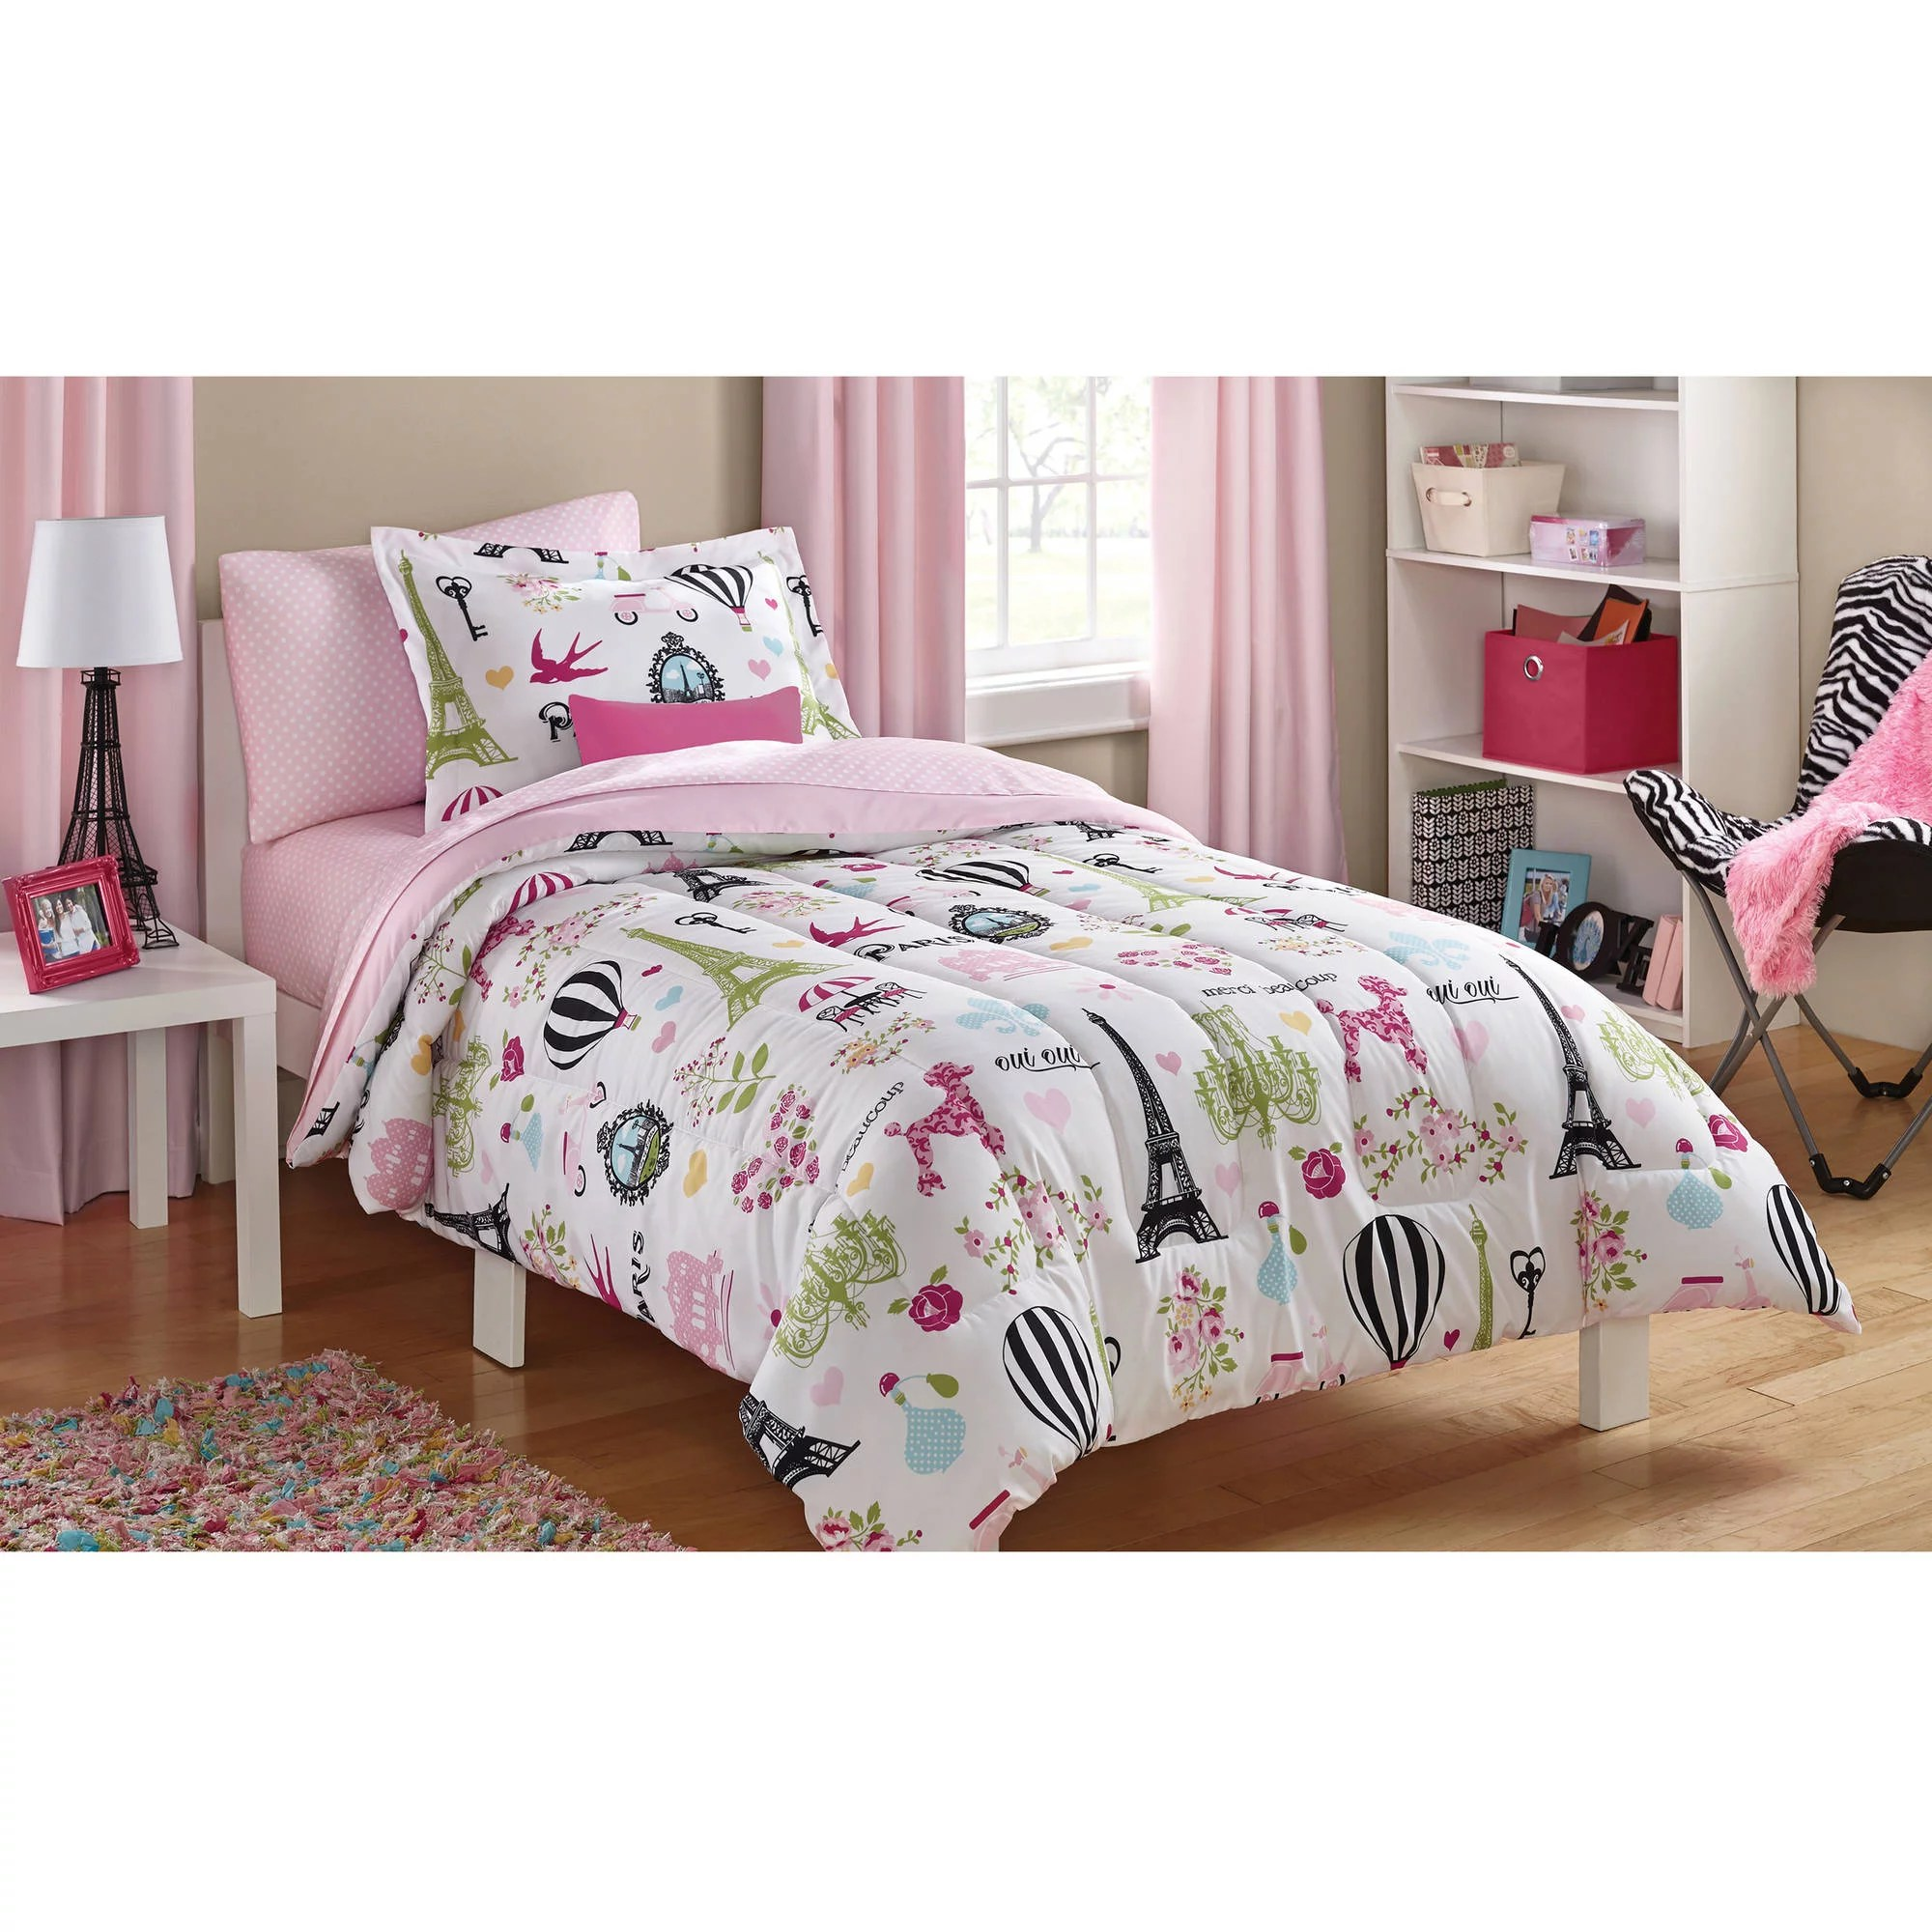 Fullsize Of Twin Bedding Sets